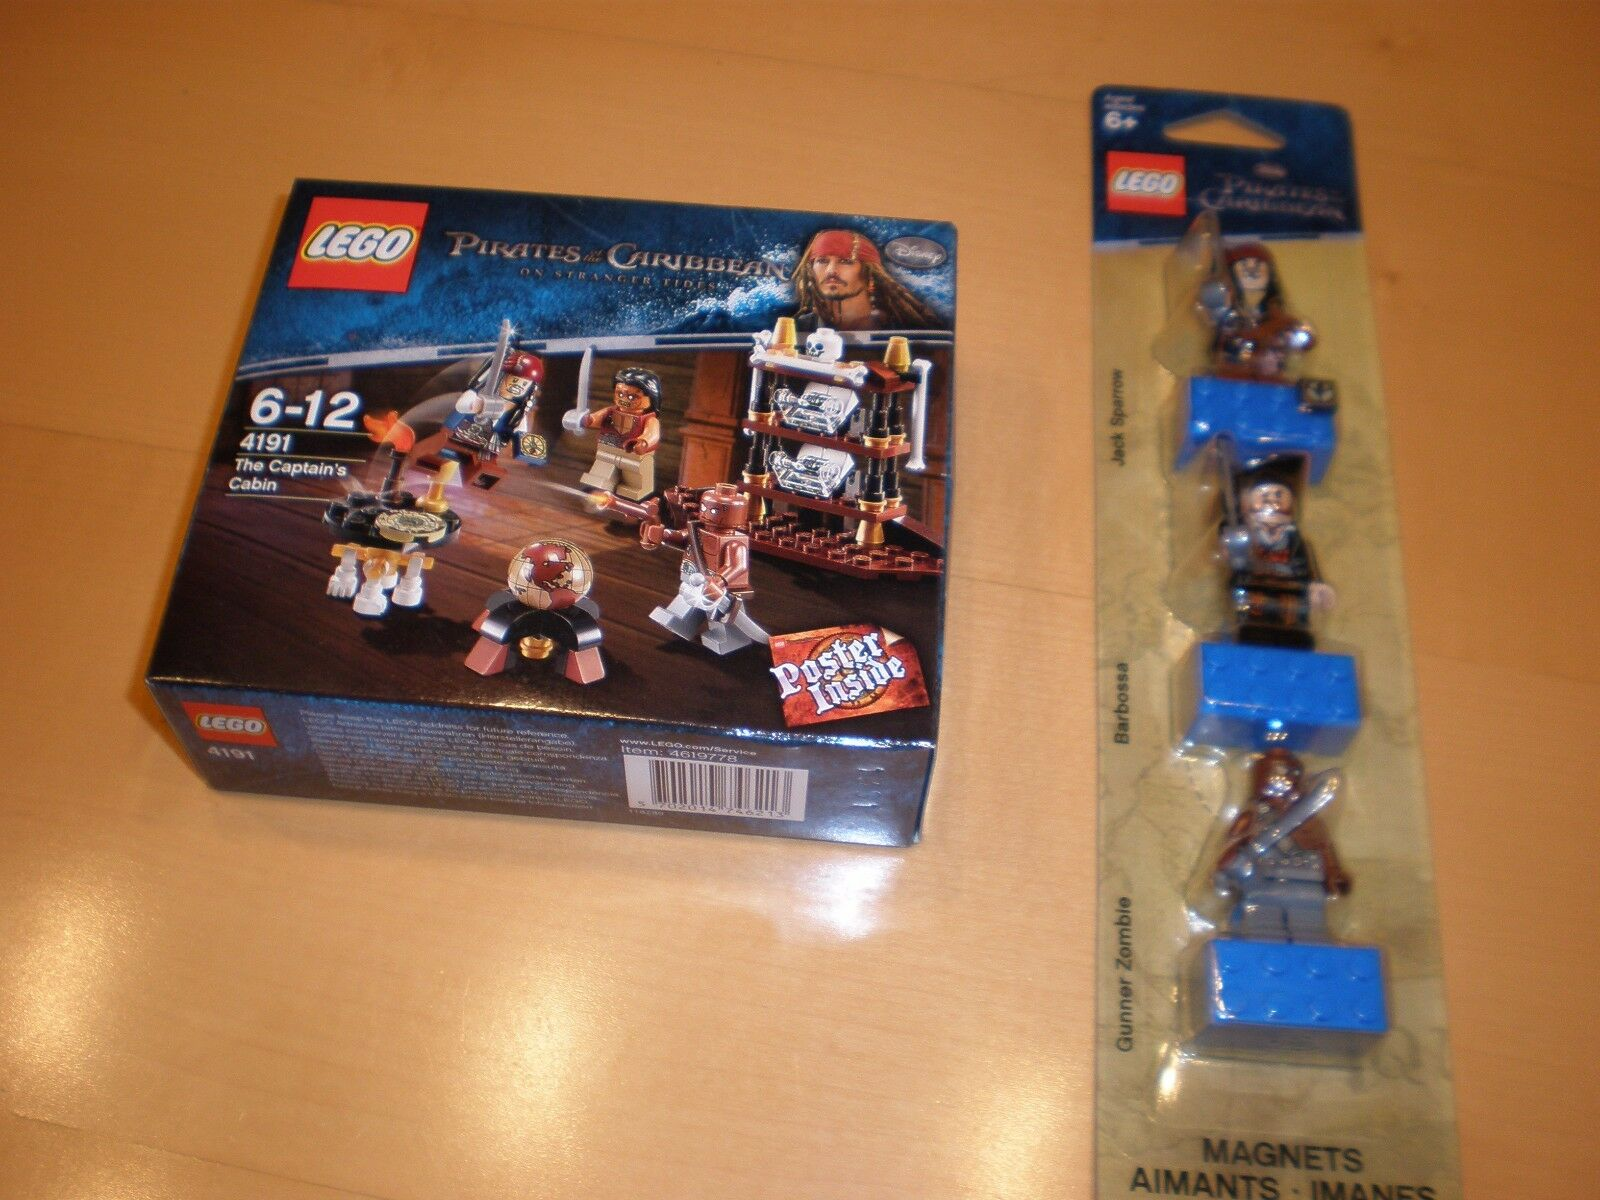 Lego 4191 Pirates of the Caribbean - The Captain's Cabin + 853191  OVP, MISB